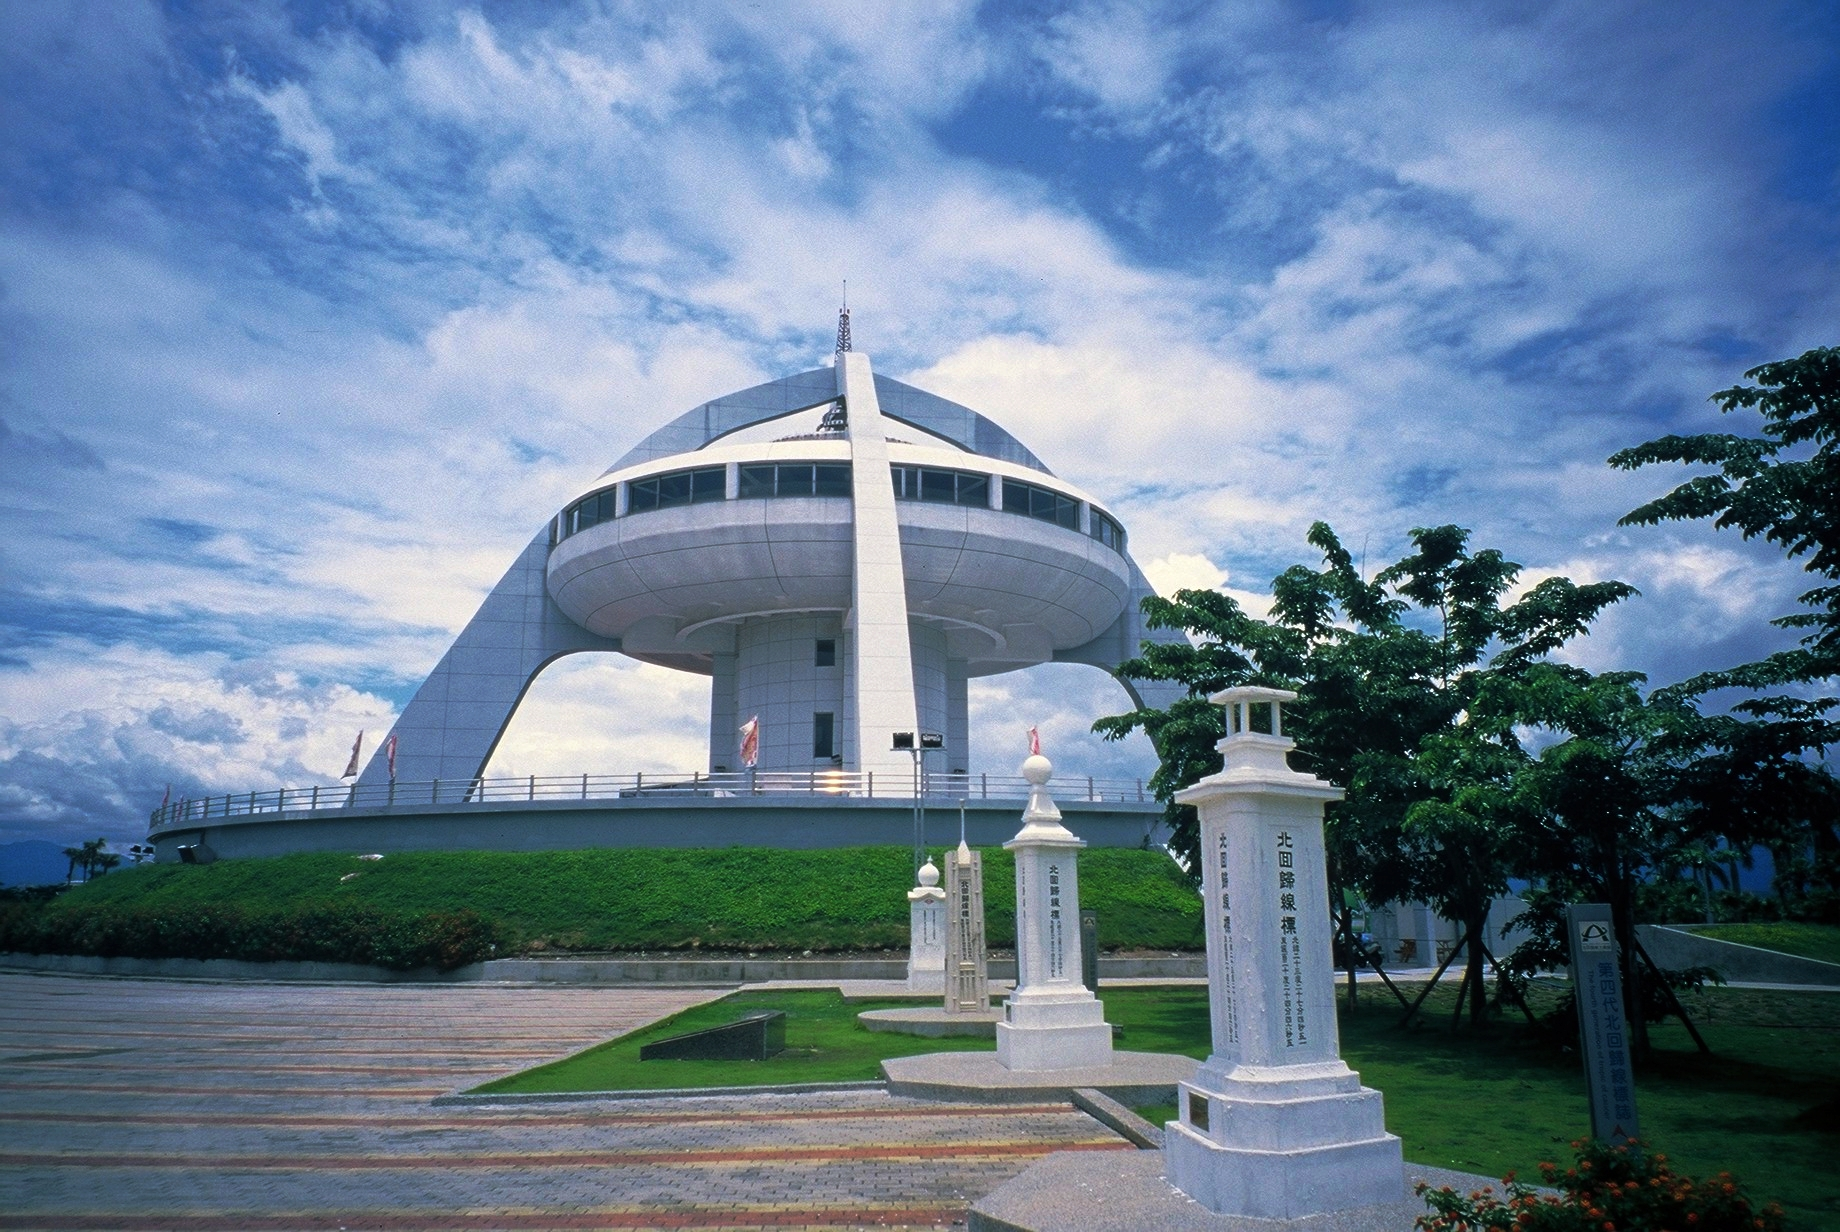 Chiayi Taiwan  City pictures : ... Tropic of Cancer Monument in Chiayi Taiwan 02 Wikimedia Commons